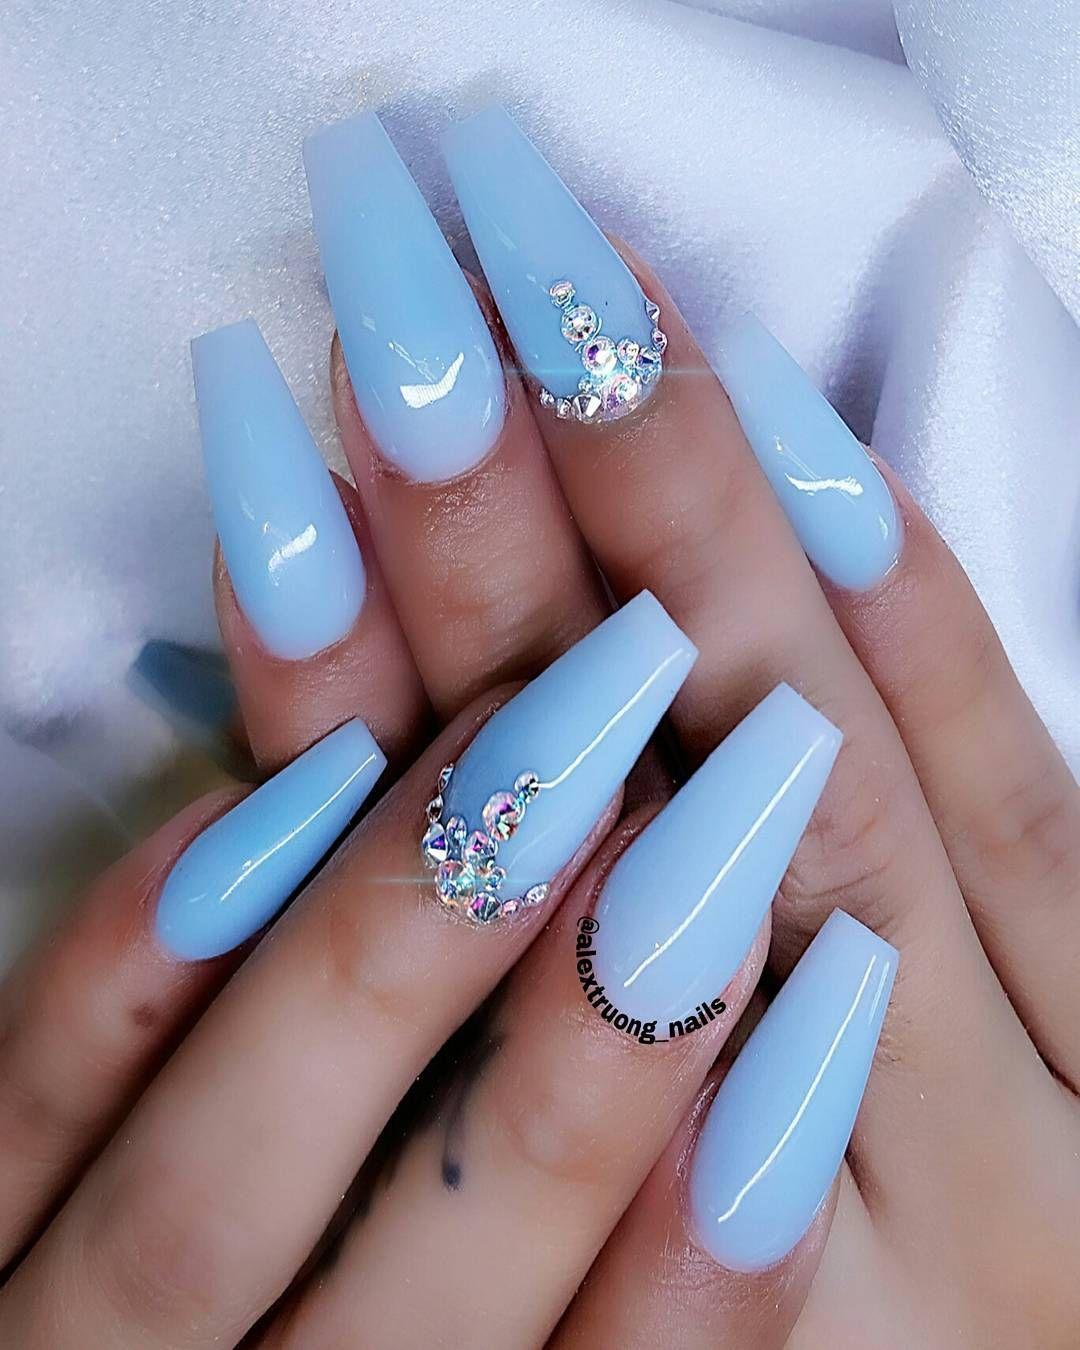 "10.9k aprecieri, 50 comentarii - Alex Trương (Team-brother)  (@alextruong_nails) pe Instagram: ""How beautiful baby blue is this ?@ ... - 10.9k Aprecieri, 50 Comentarii - Alex Trương (Team-brother"